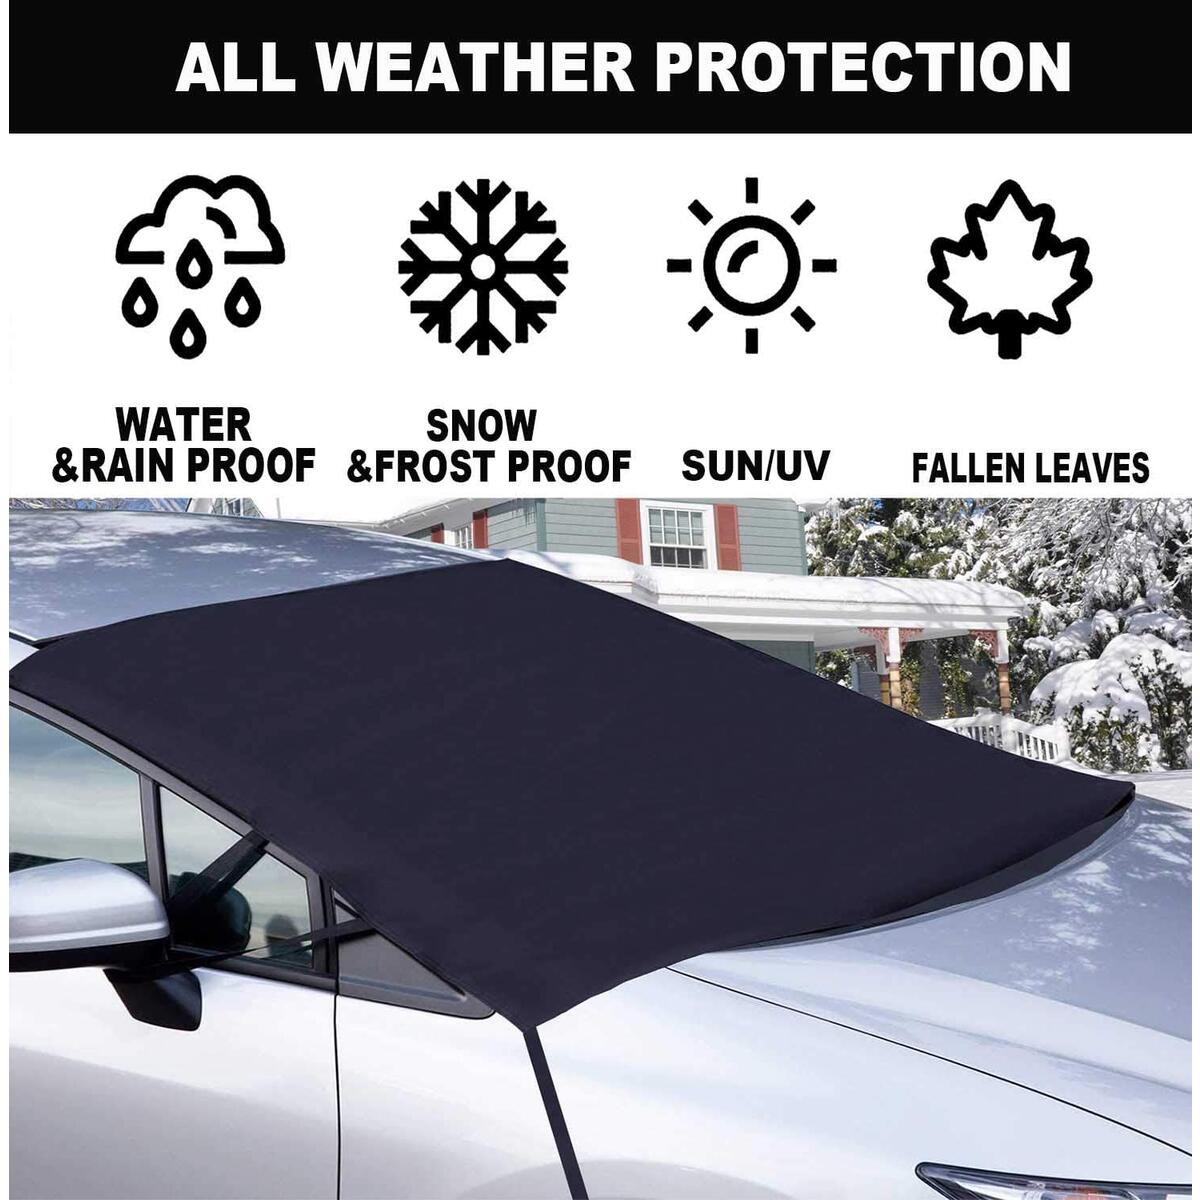 BodiCal Windshield Snow Ice Cover for Car, 600D Oxford Fabric Extra Large Thick Frost Guard Windshield Protector Cover from Ice and Snow, Straps Fixed Windproof, Fits Most Cars Trucks SUV MPV